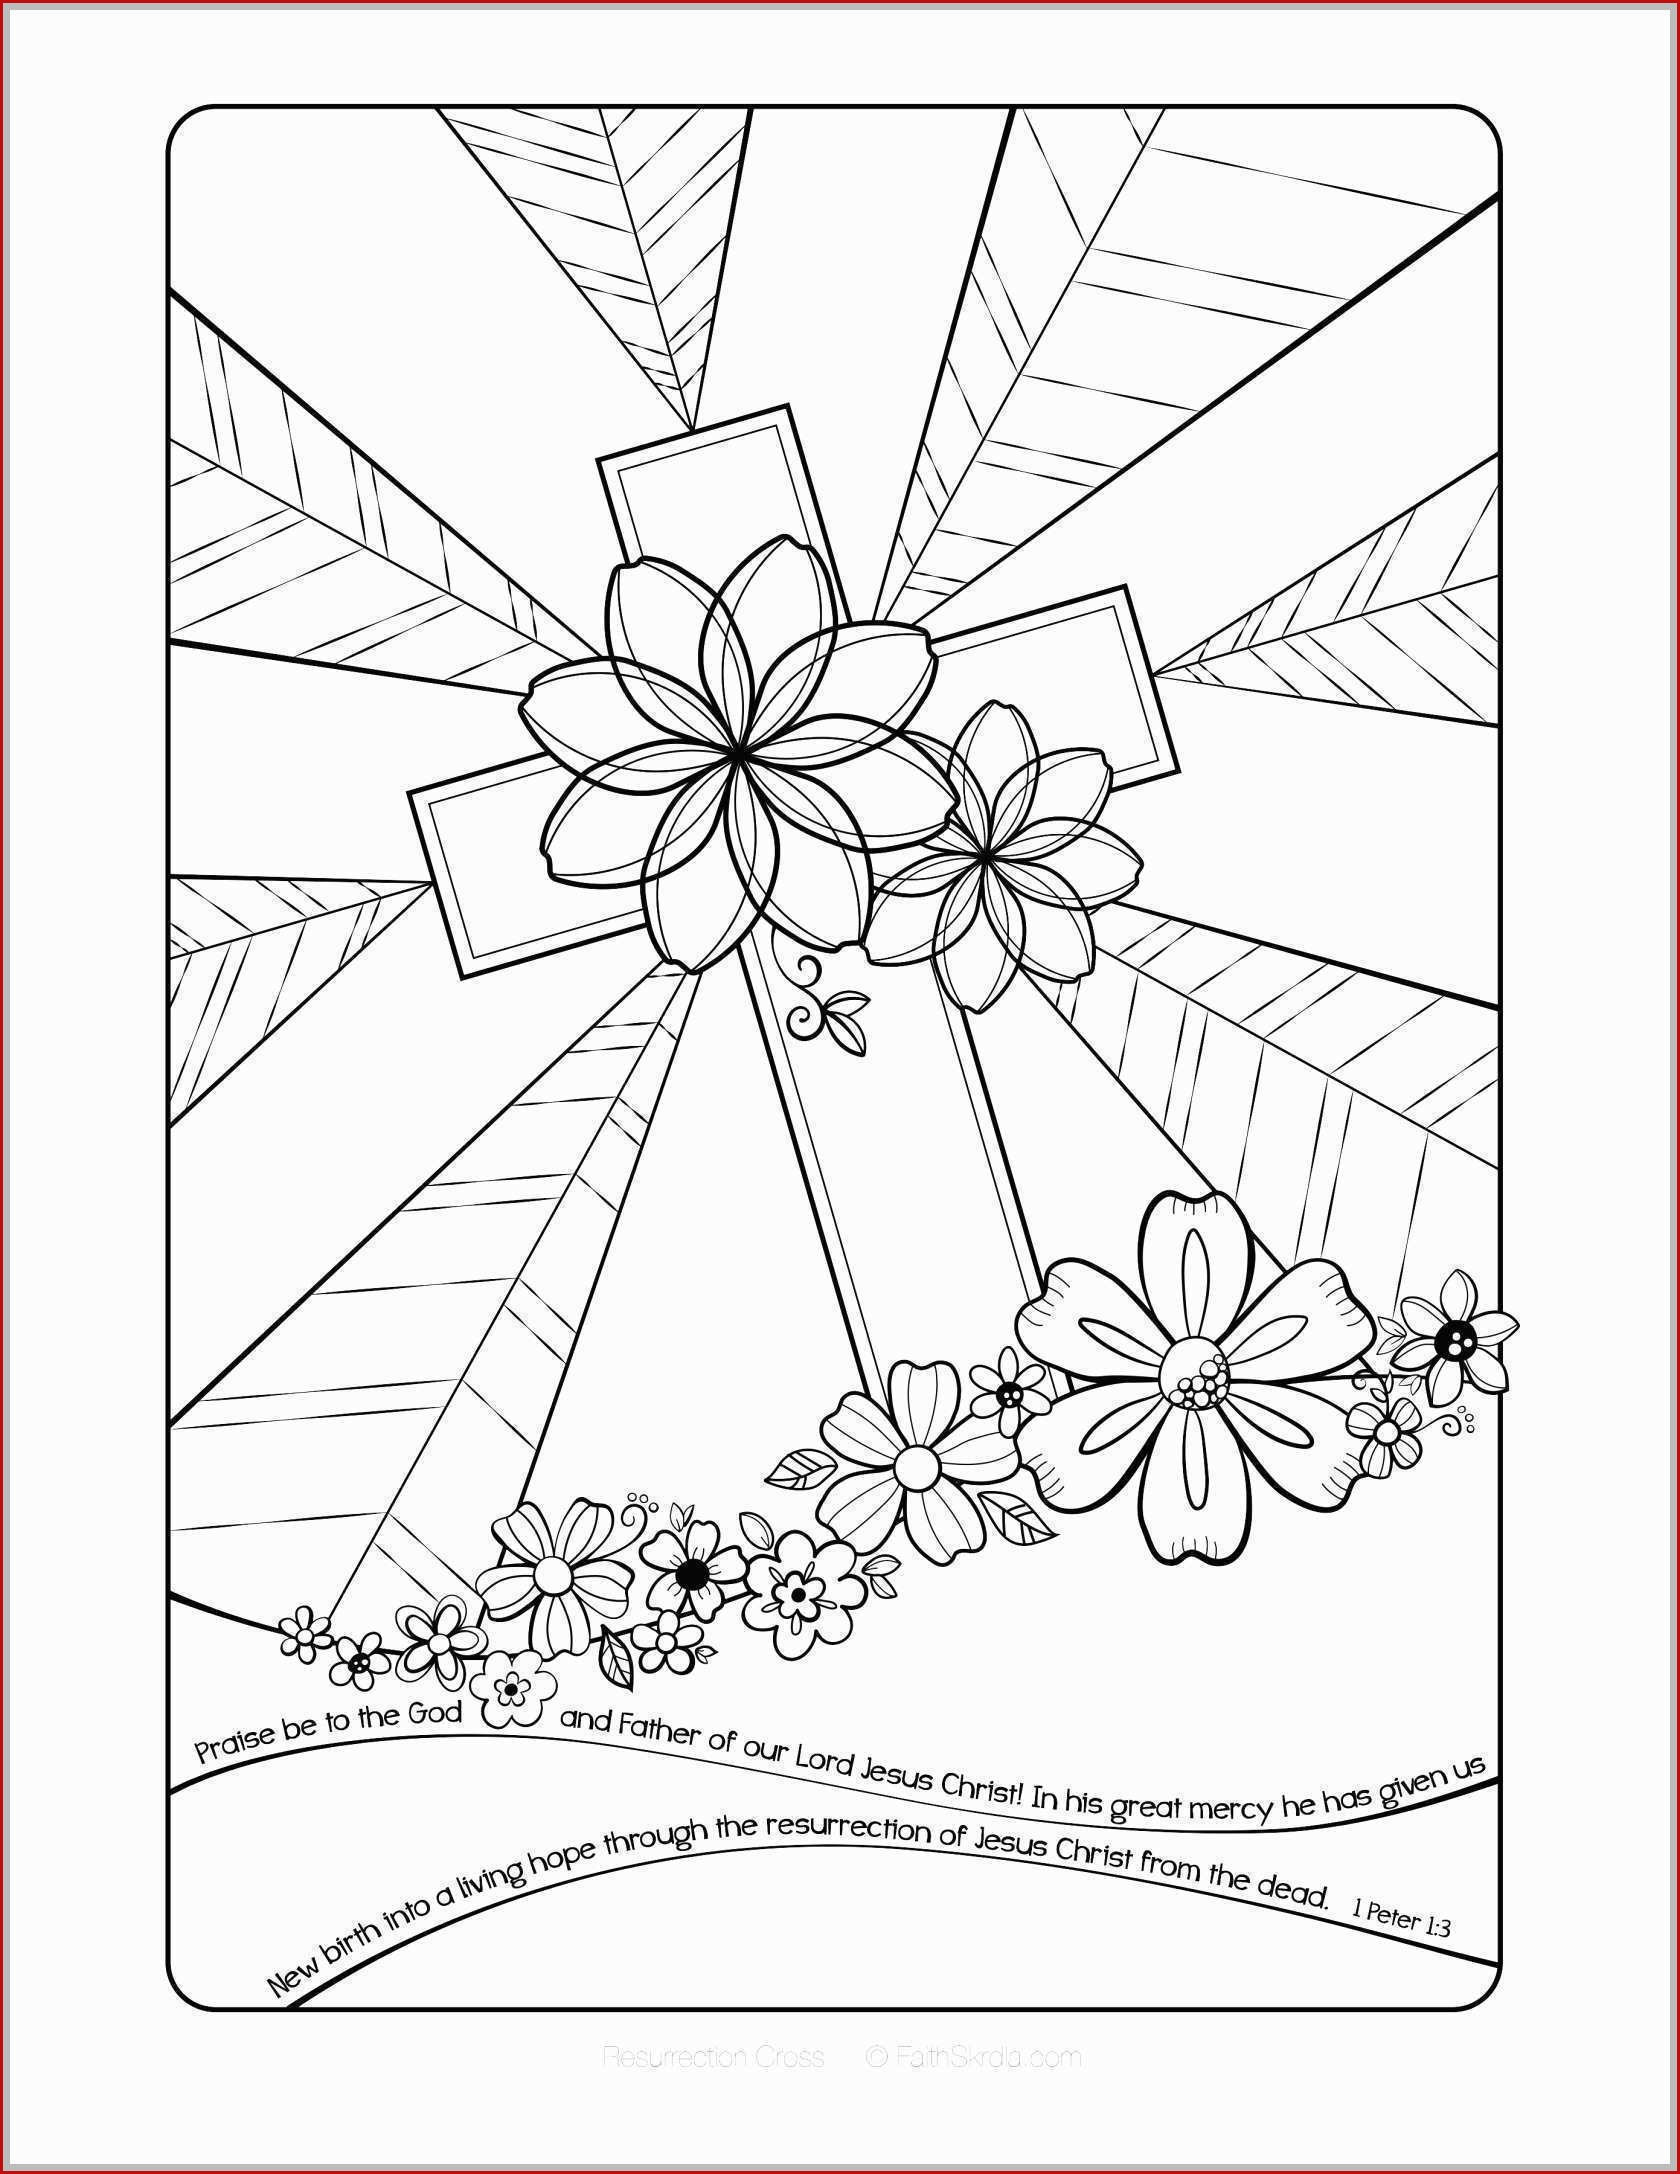 Polygons Worksheets 5th Grade Printable Worksheets for Elementary Students Numbers to Free